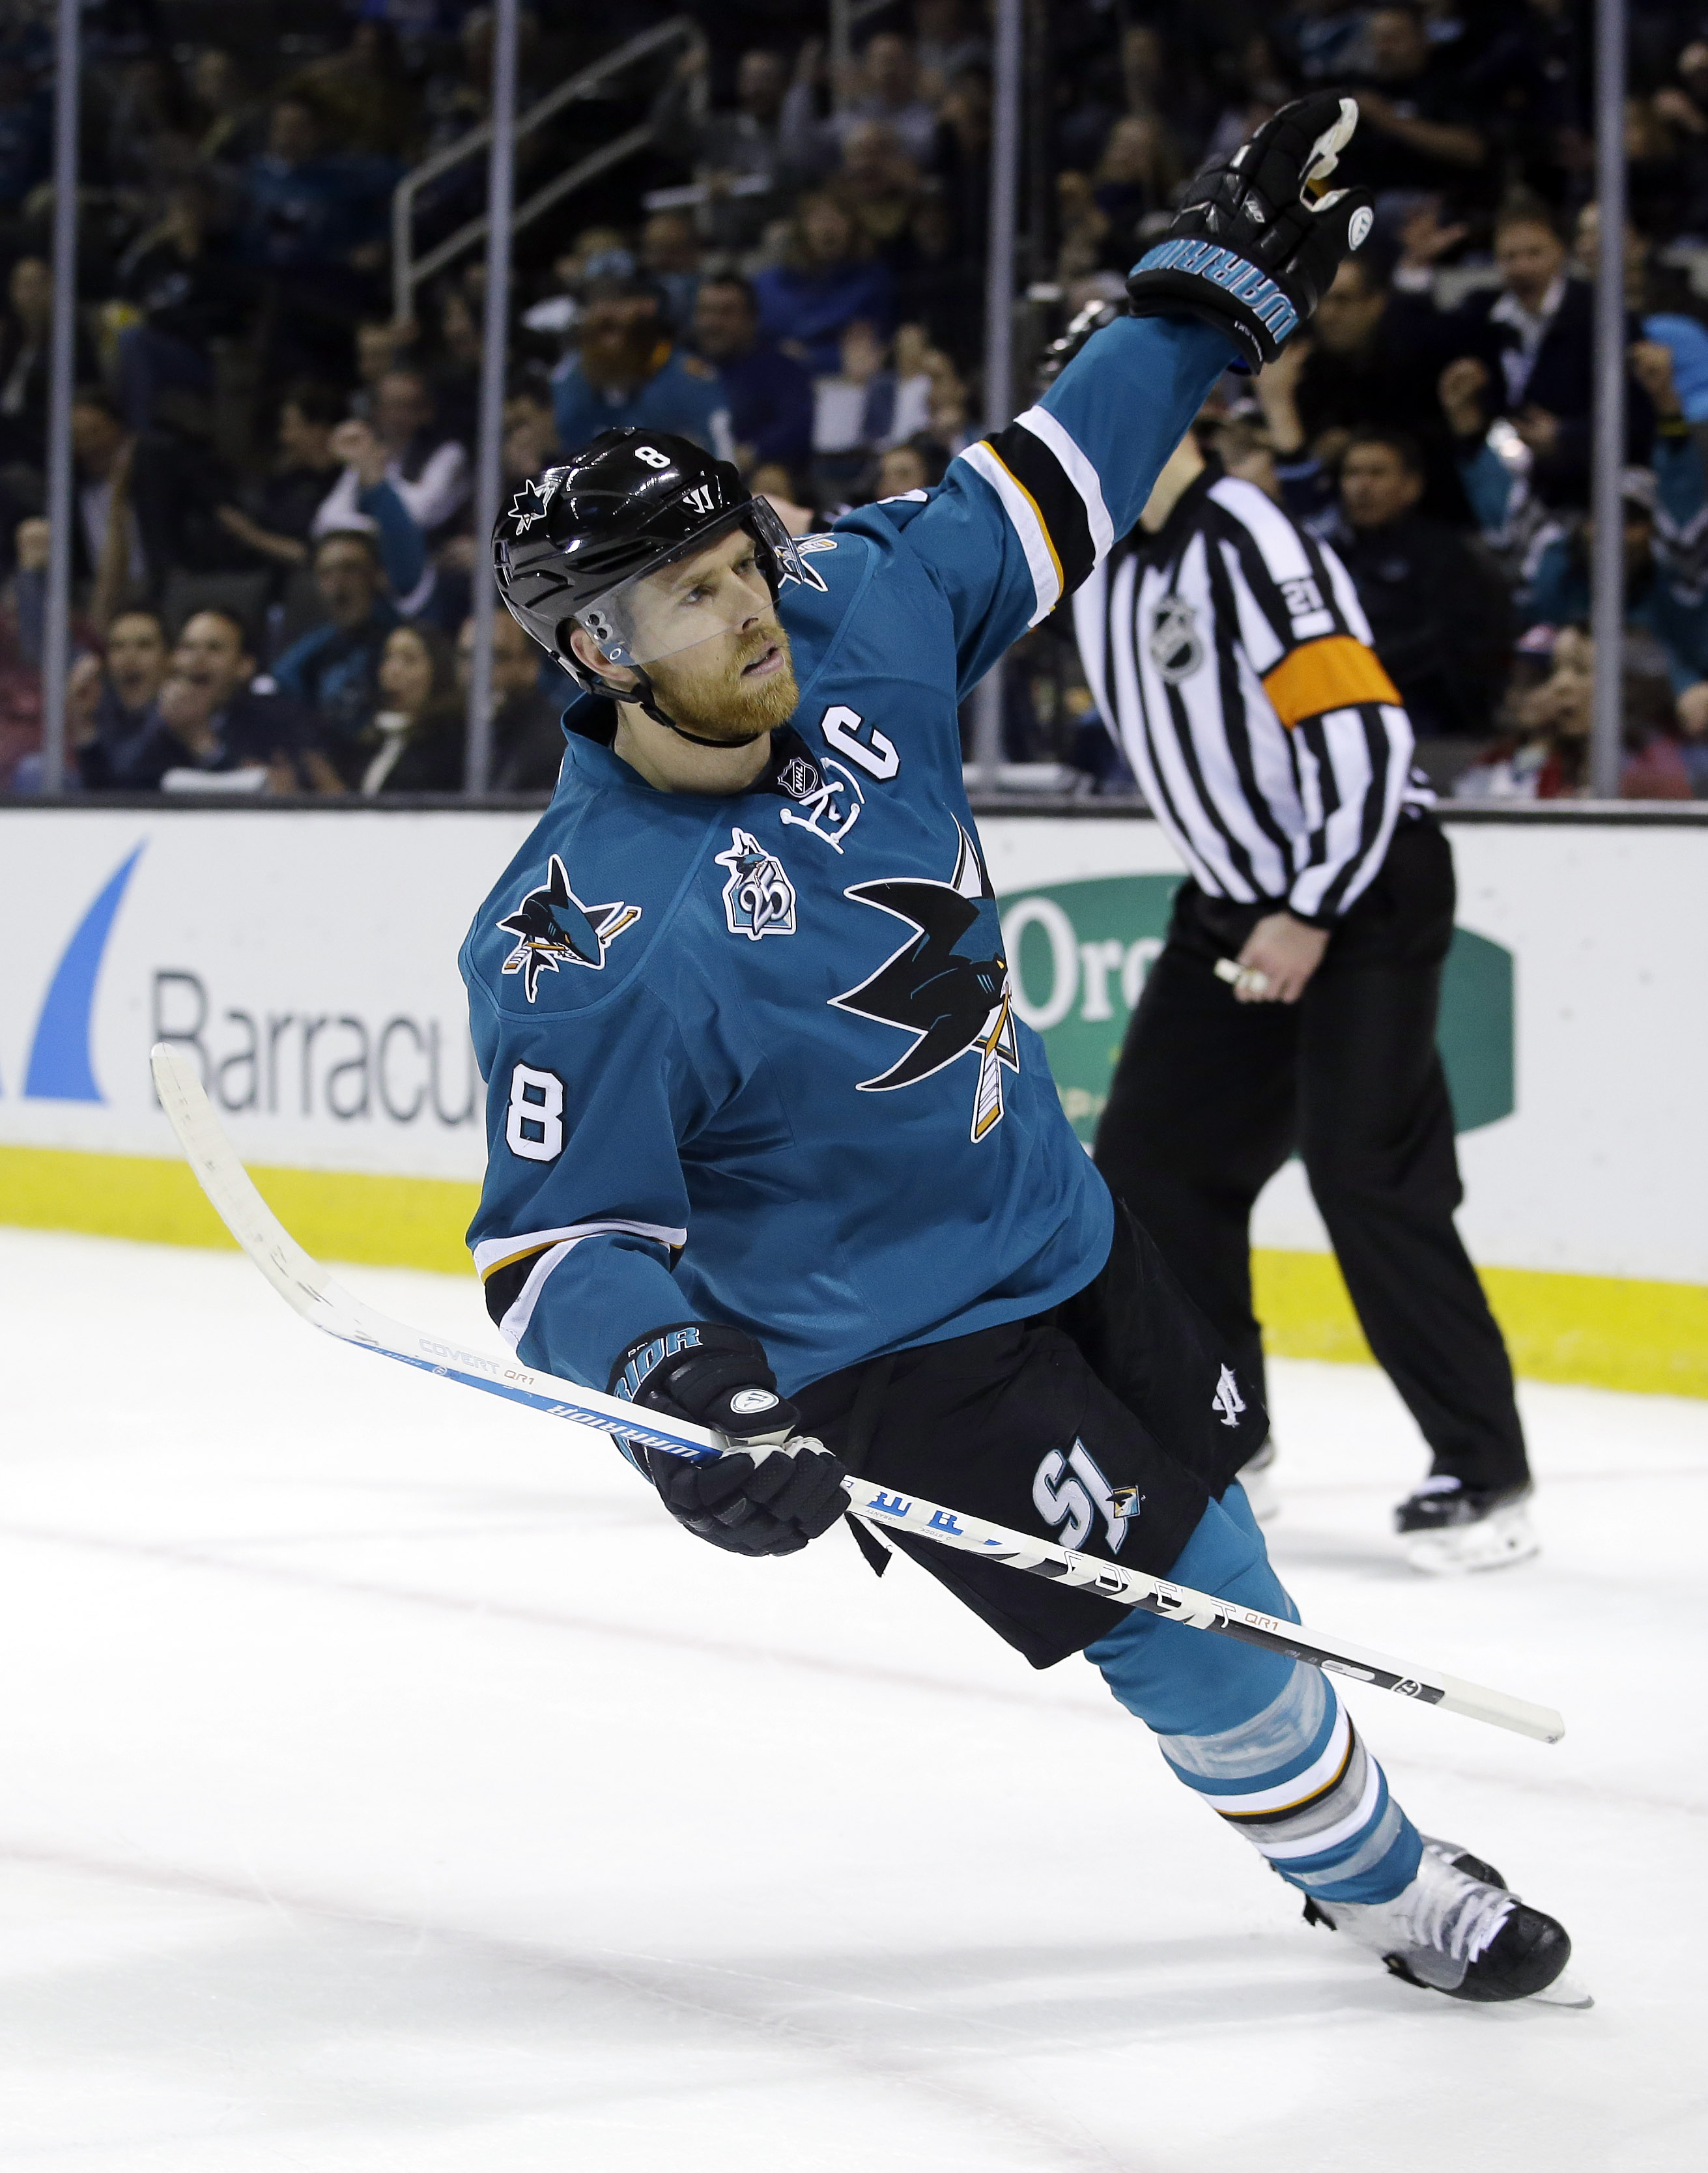 San Jose Sharks' Joe Pavelski (8) celebrates after scoring against the Montreal Canadiens during the first period of an NHL hockey game Monday, Feb. 29, 2016, in San Jose, Calif. (AP Photo/Marcio Jose Sanchez)